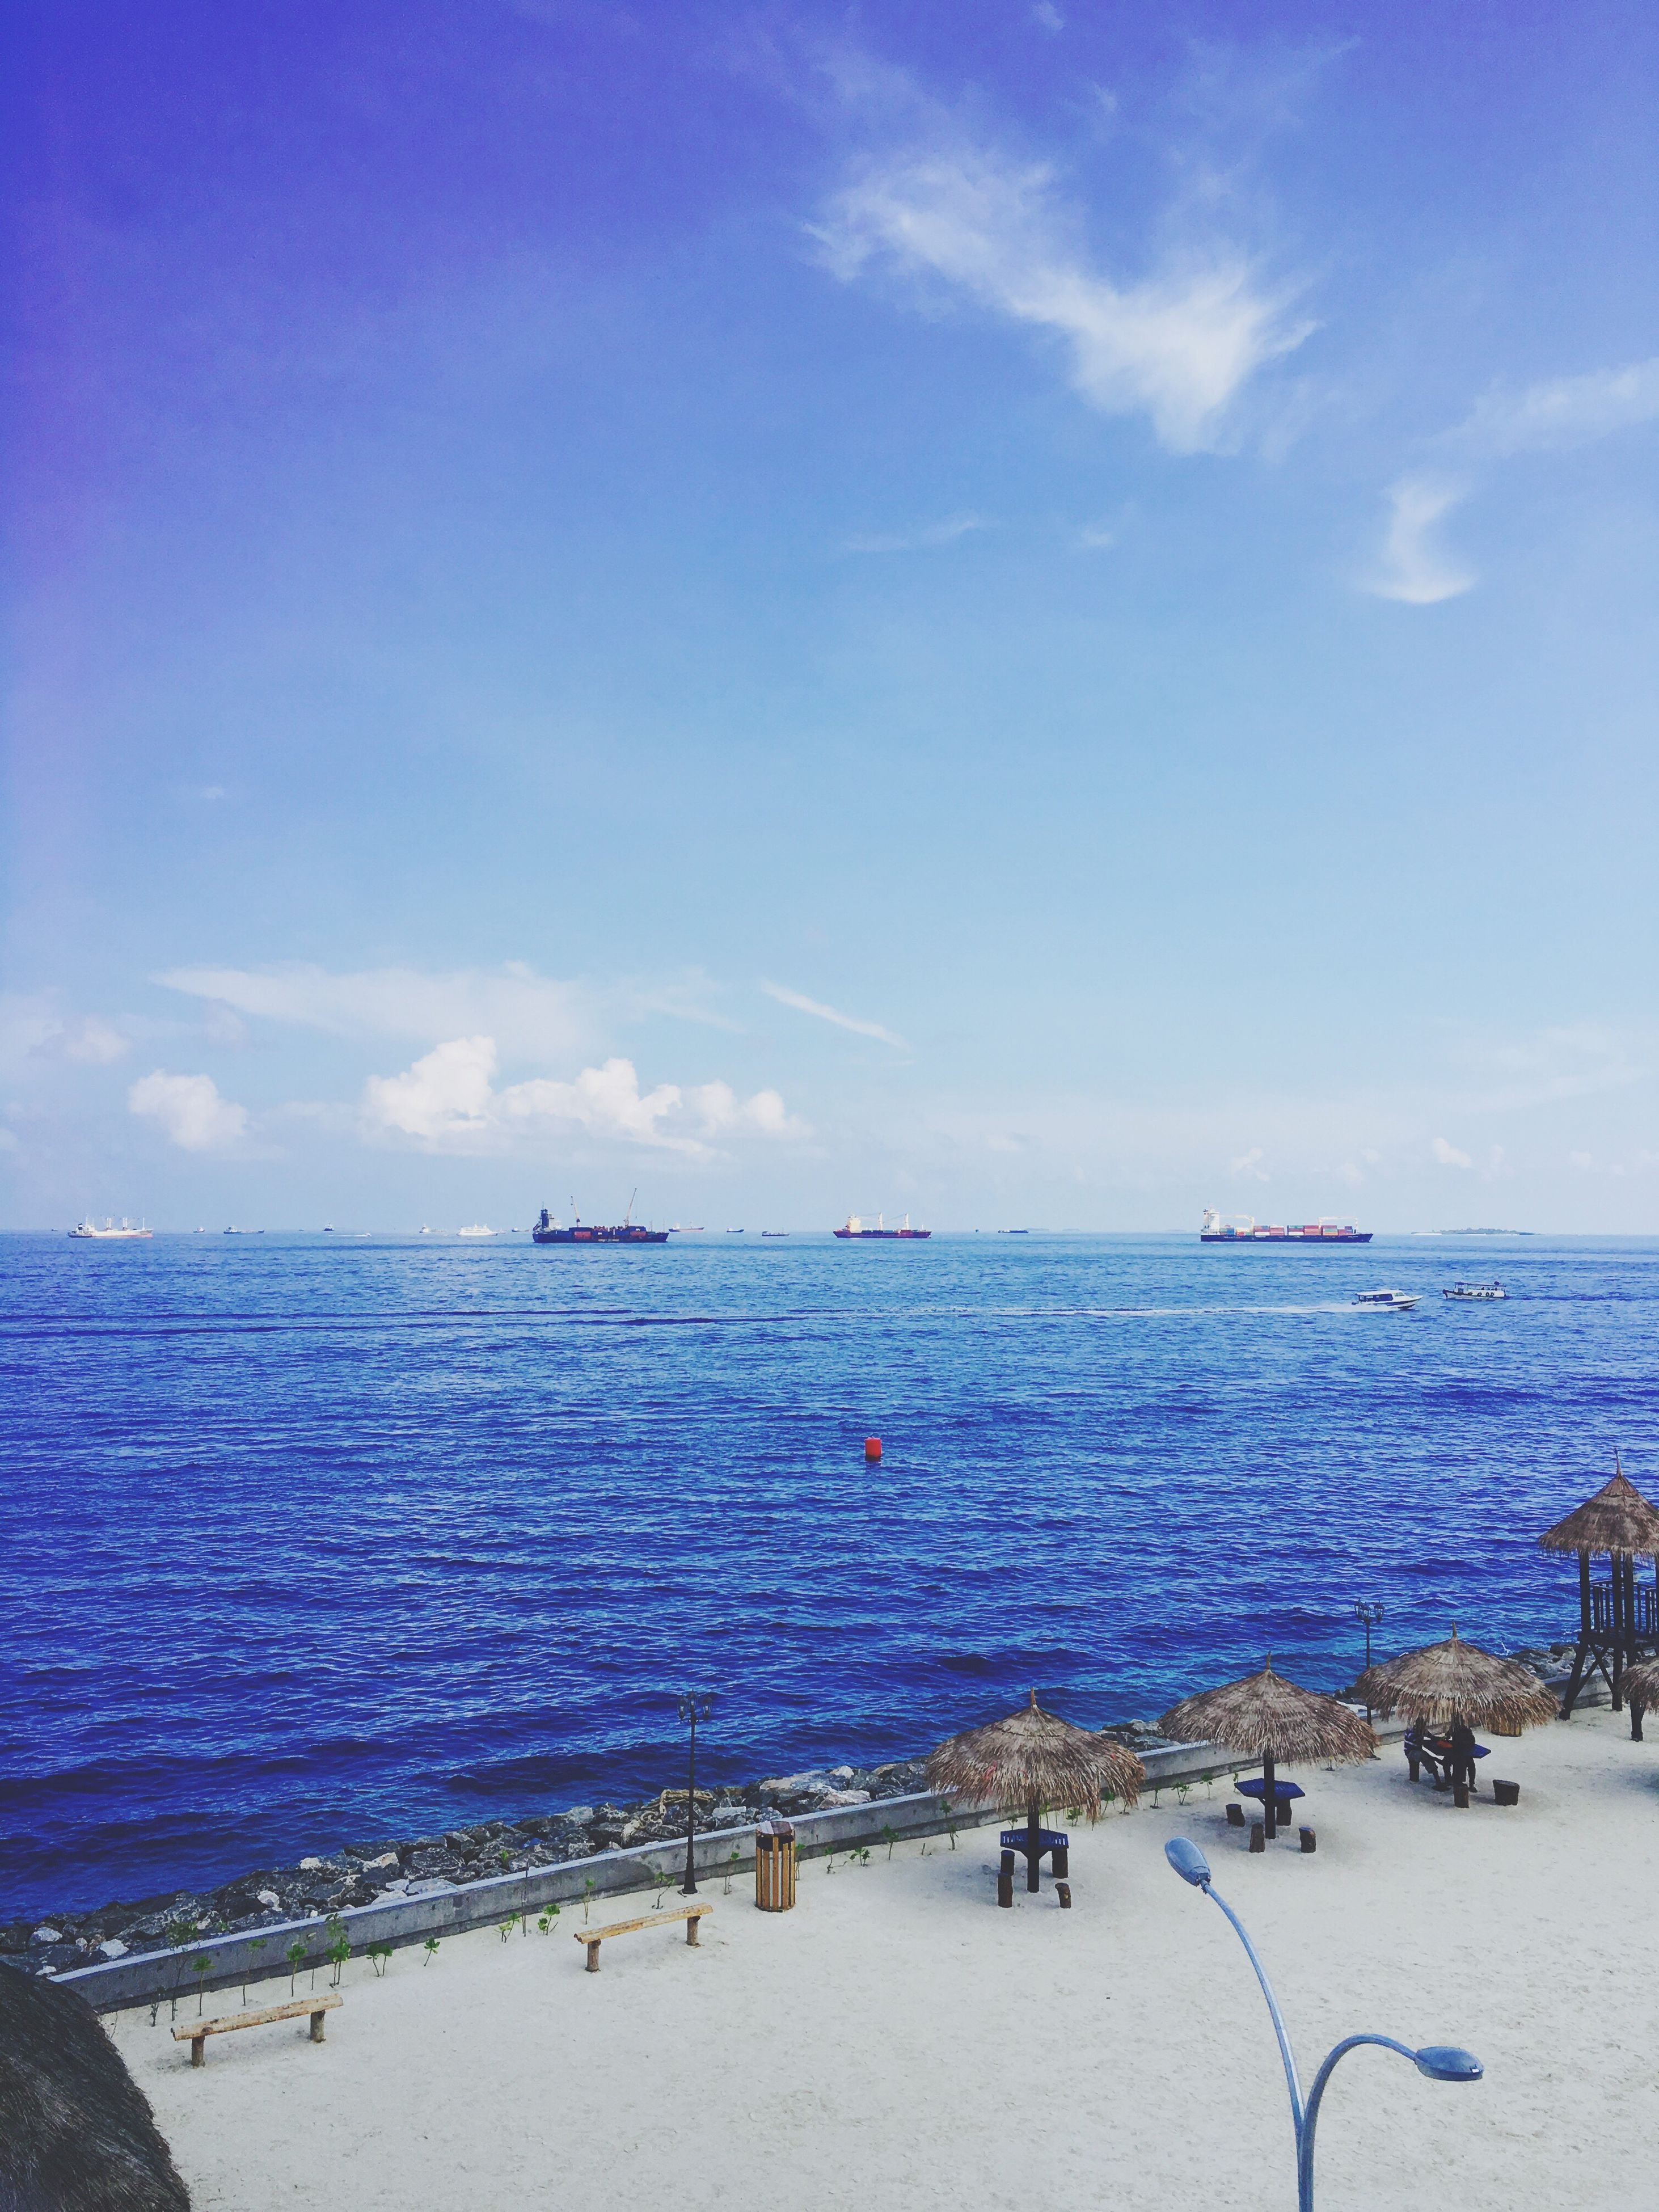 sea, beach, water, horizon over water, blue, shore, sky, large group of people, sand, vacations, scenics, nautical vessel, transportation, beauty in nature, tranquil scene, nature, tranquility, travel, incidental people